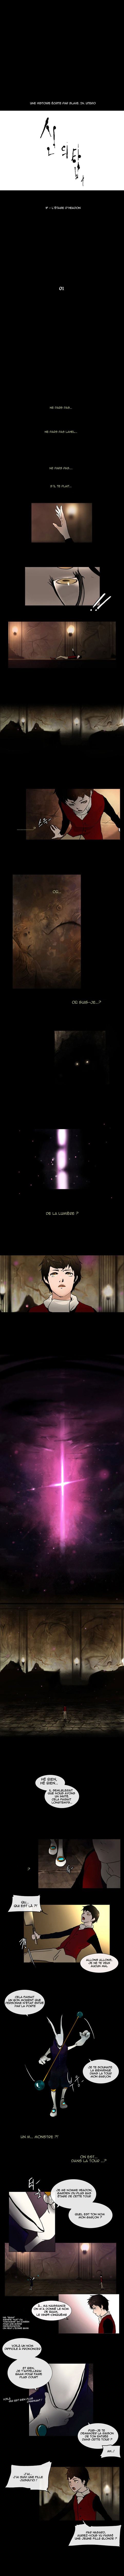 Tower of God - Chapitre 1 - L'étage d'Headon #4